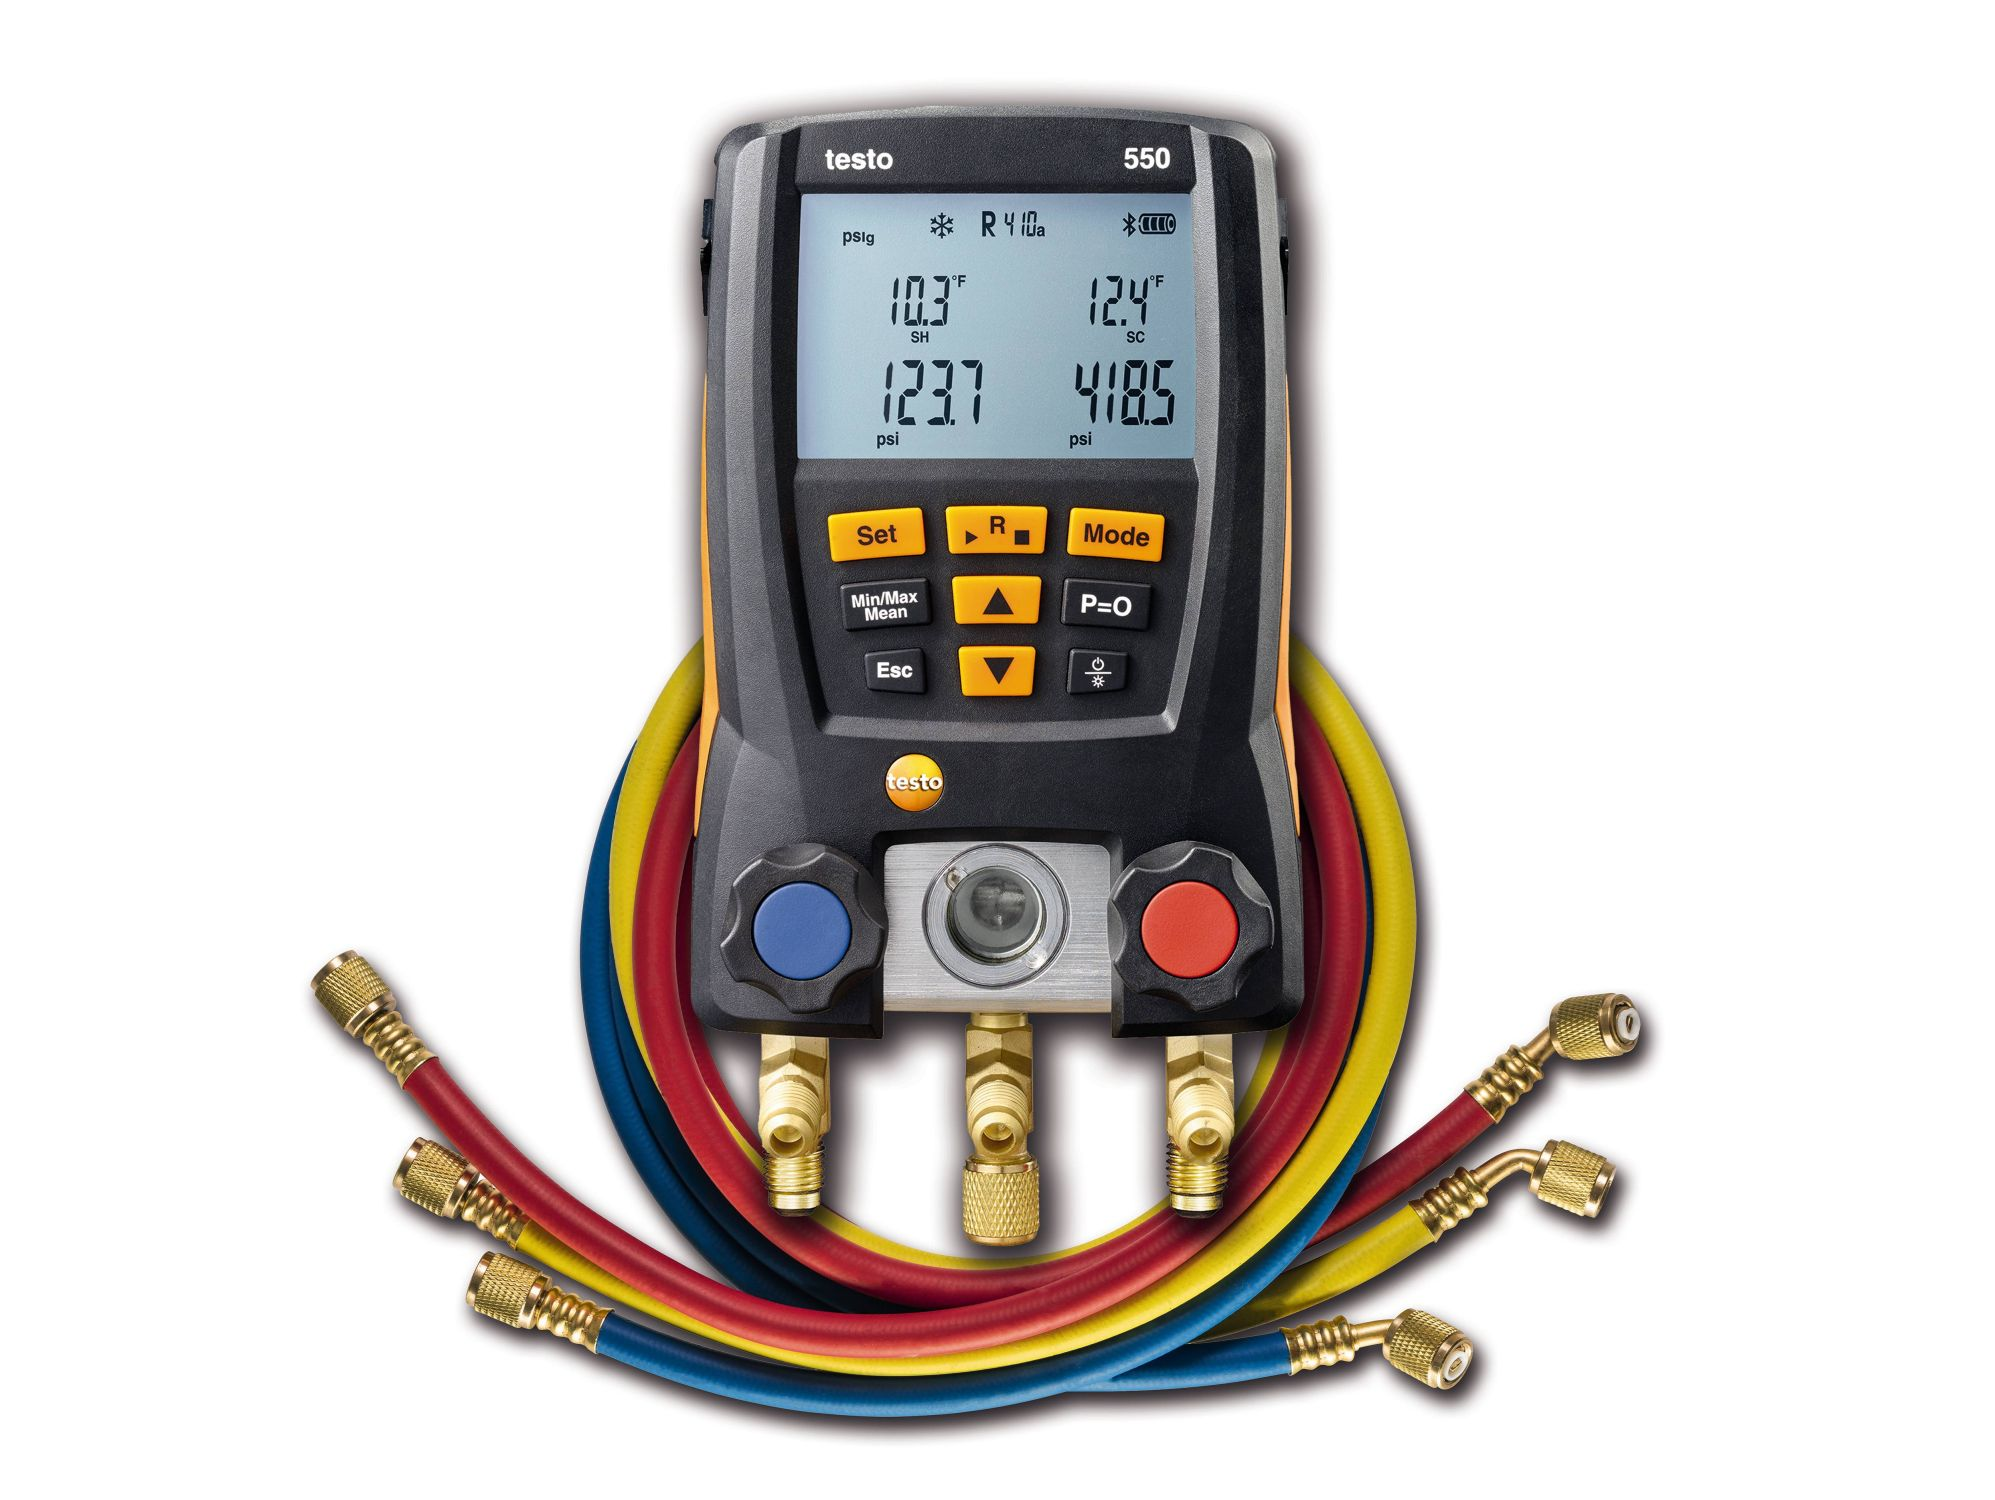 Testo-550-Digital-Manifold-with-three-hoses-US.jpg